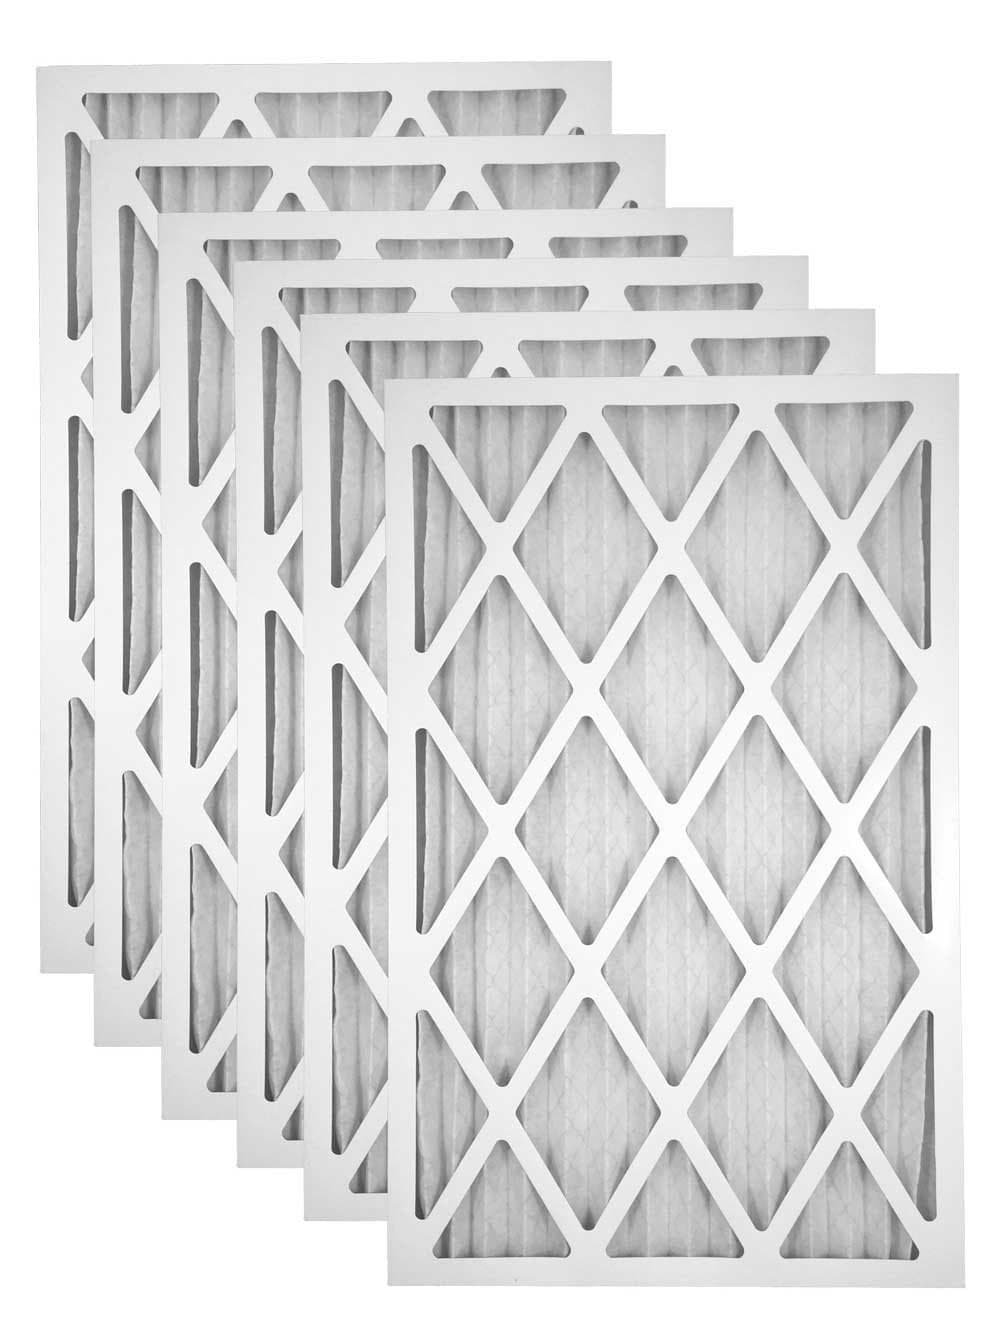 24x24x1 Merv 13 Pleated AC Furnace Filter - Case of 6 by Atomic Filters